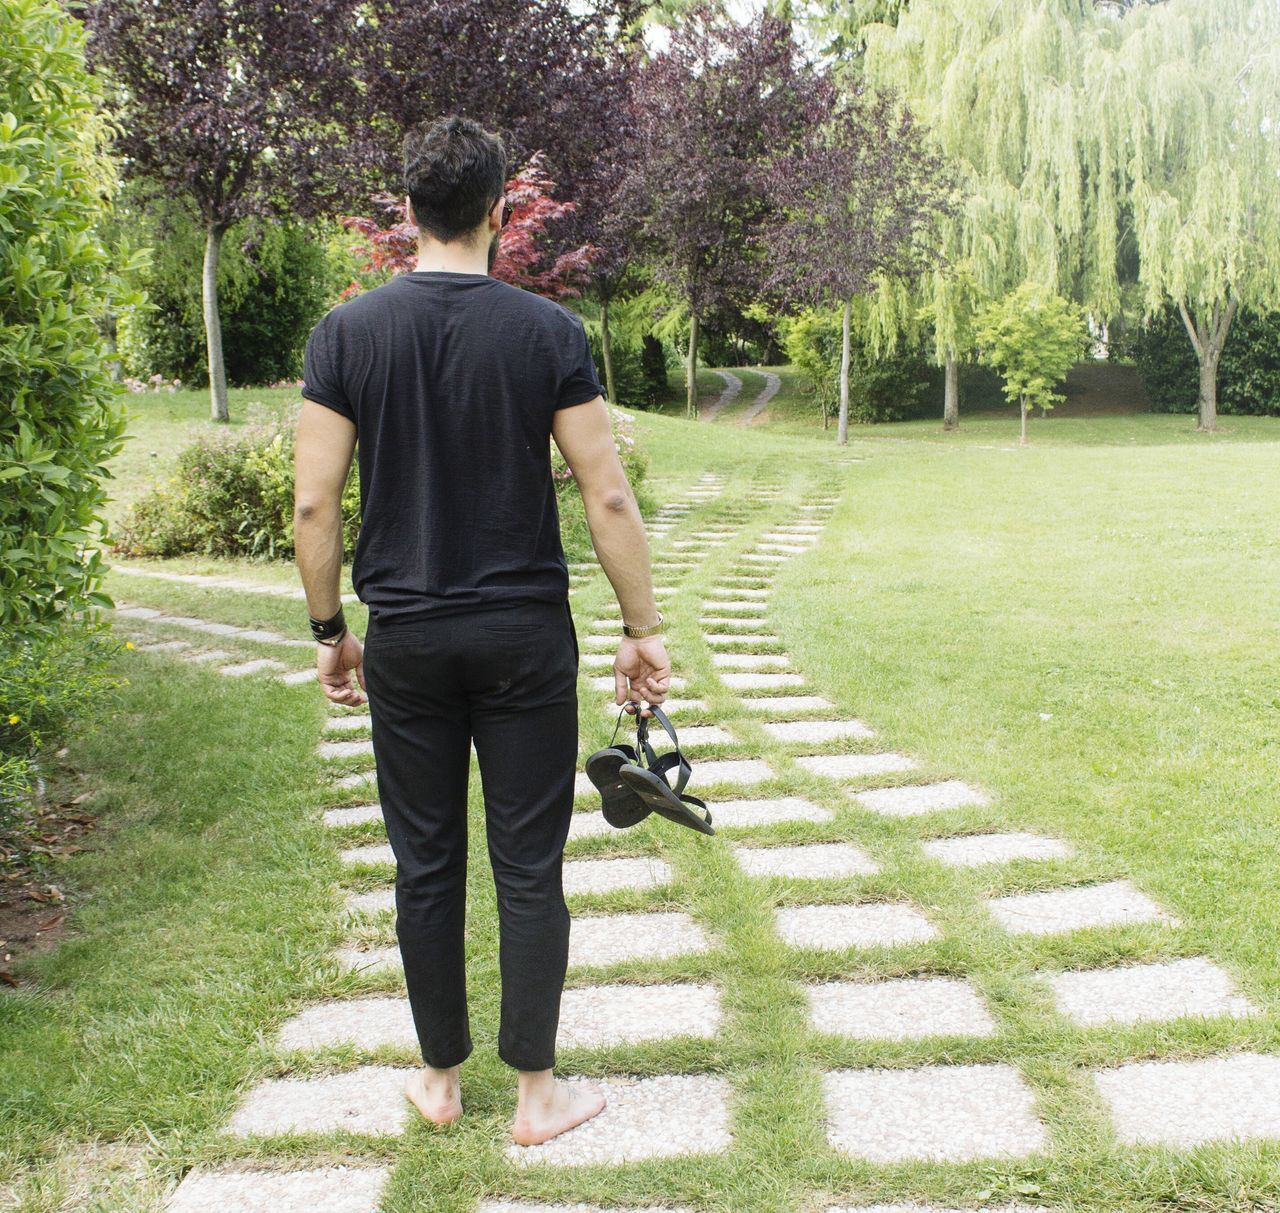 rear view, tree, walking, grass, full length, casual clothing, one person, the way forward, park - man made space, day, real people, men, outdoors, growth, nature, young adult, one man only, only men, adult, people, adults only